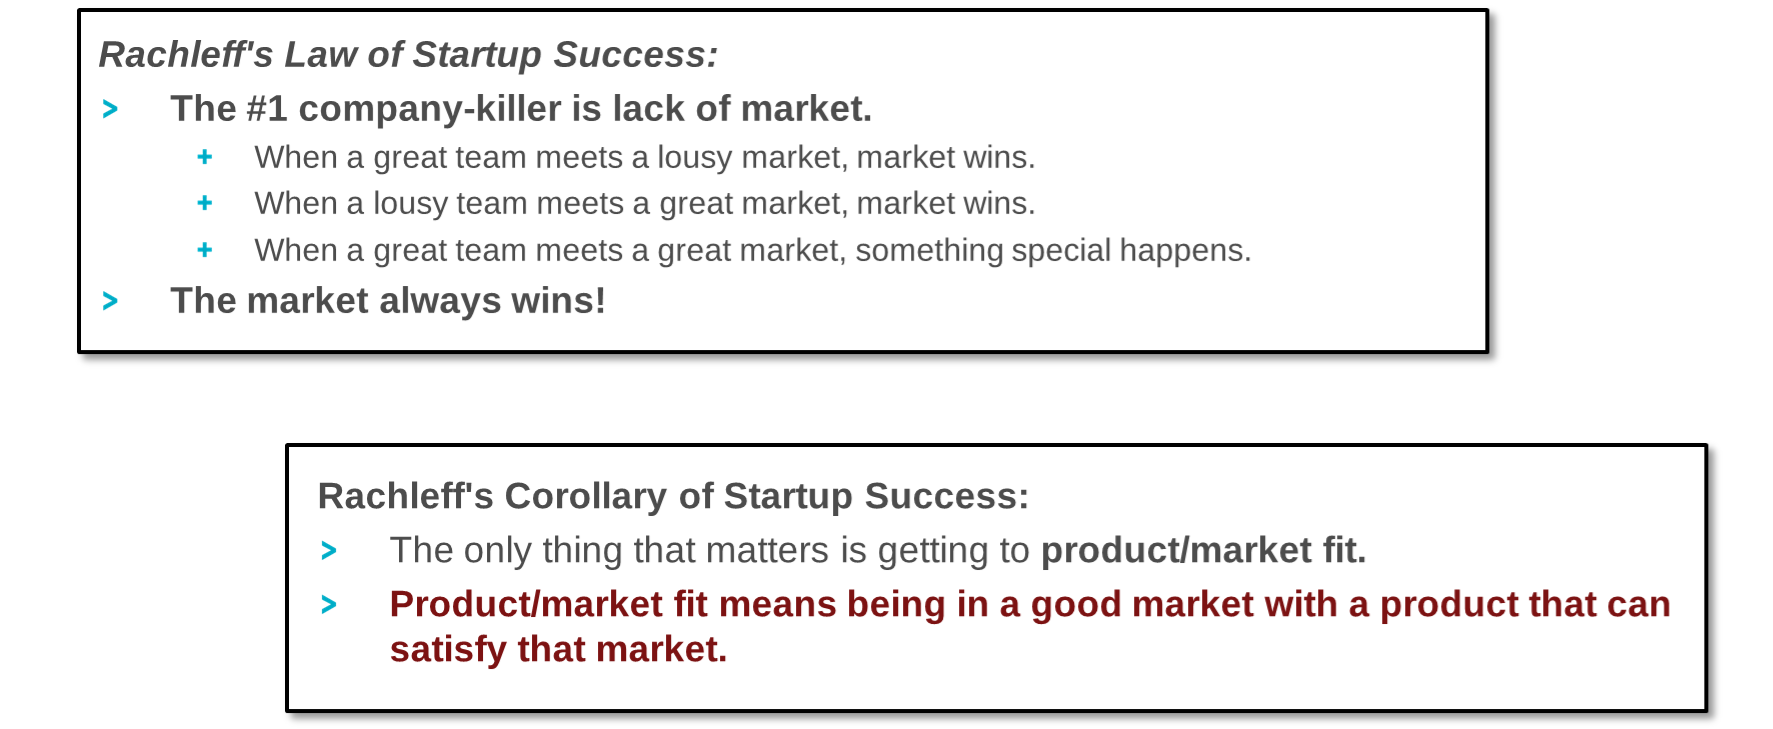 Rachleff's laws of Startup